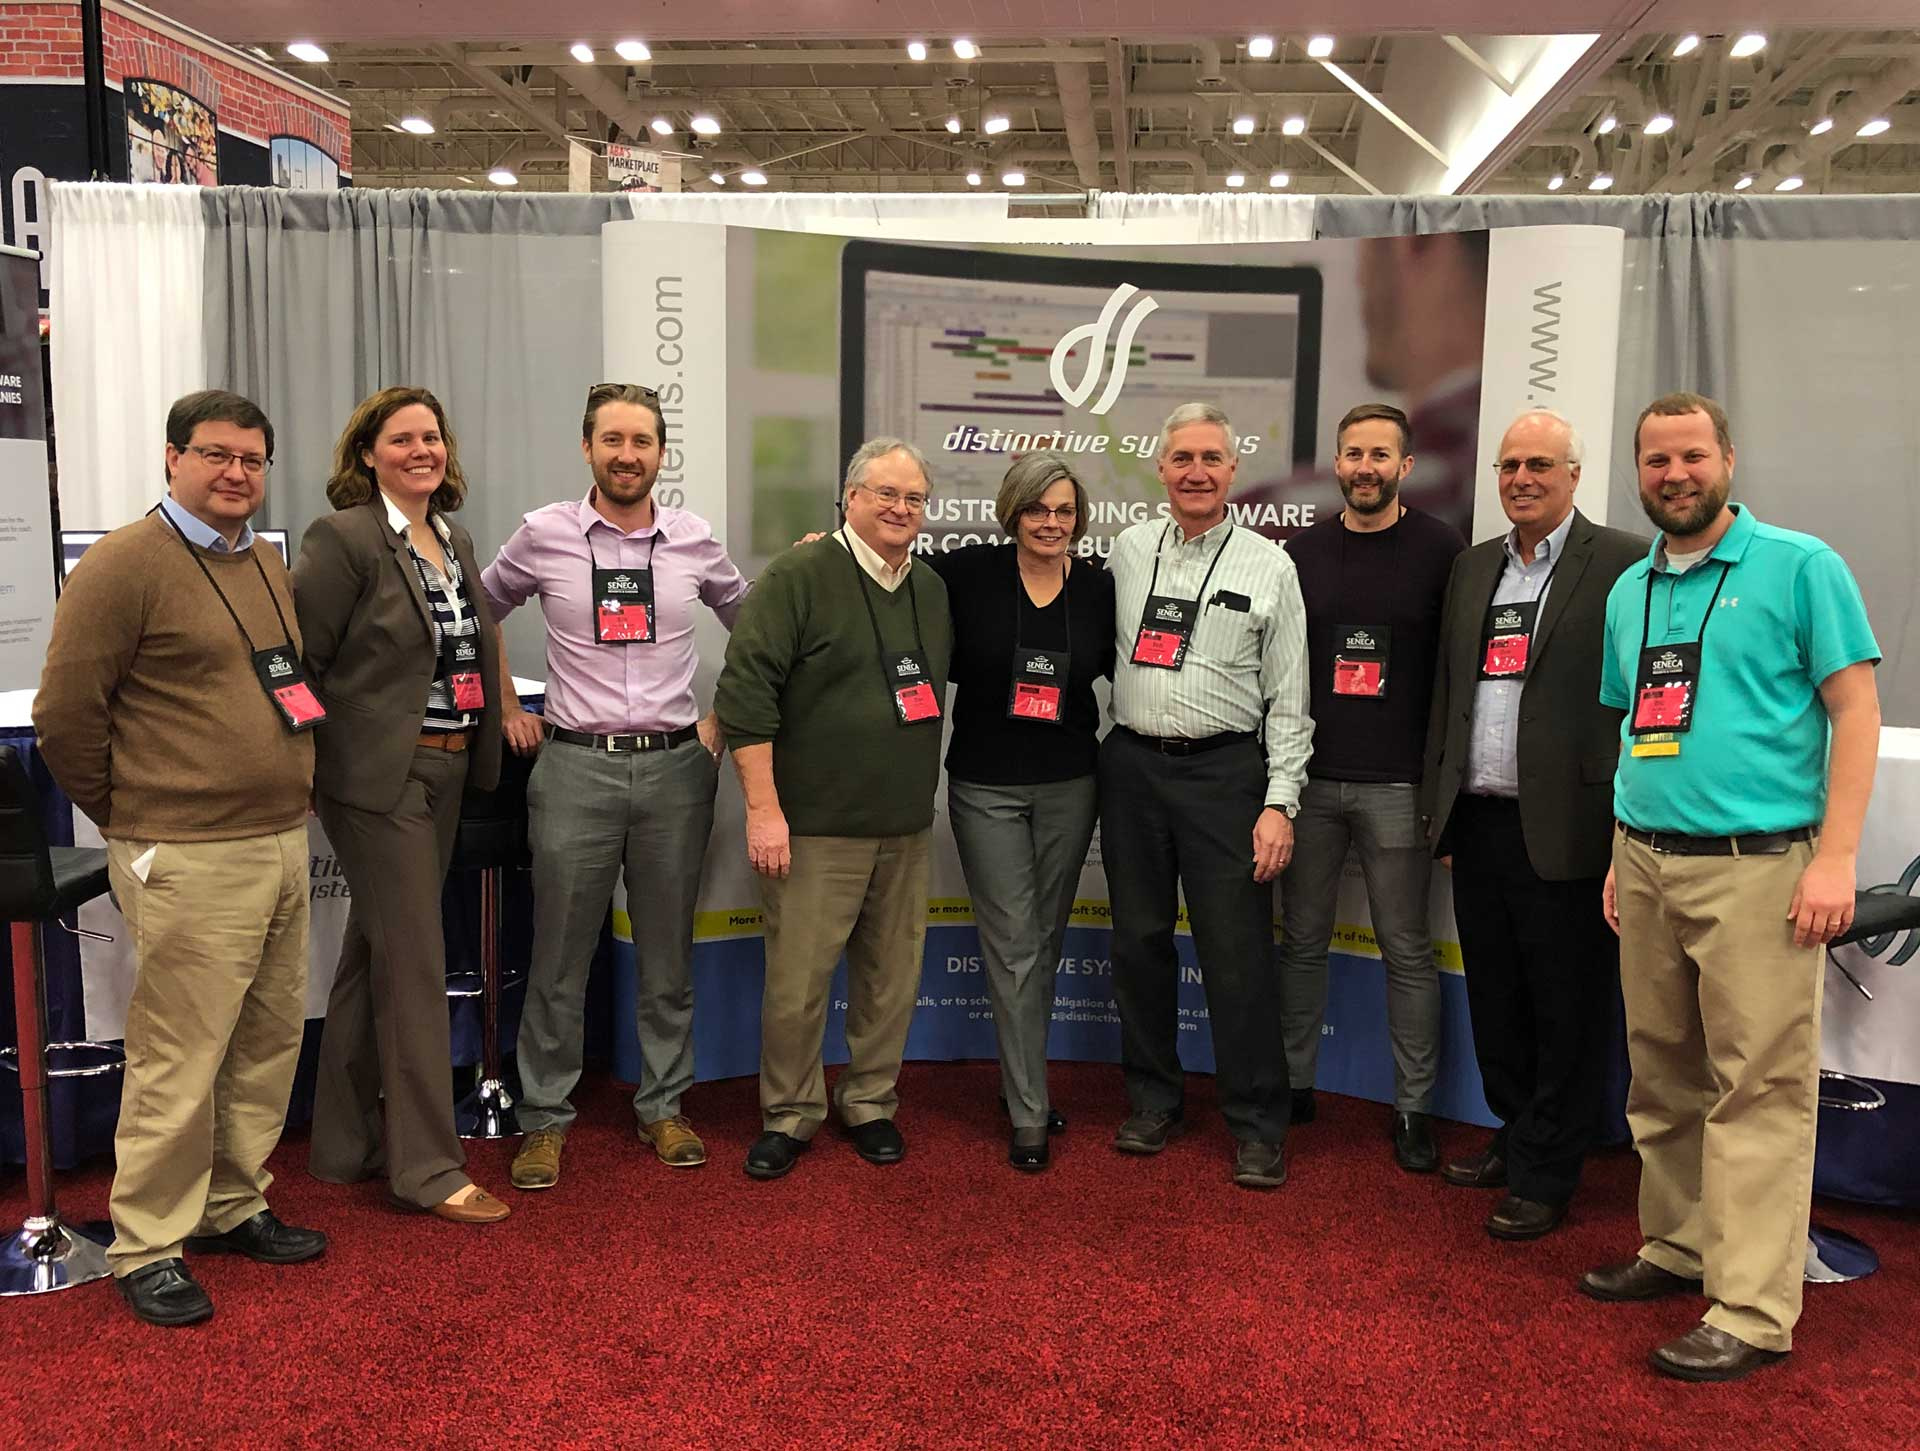 The Distinctive Systems Inc team at the ABA Marketplace 2019 in Louisville, KY.